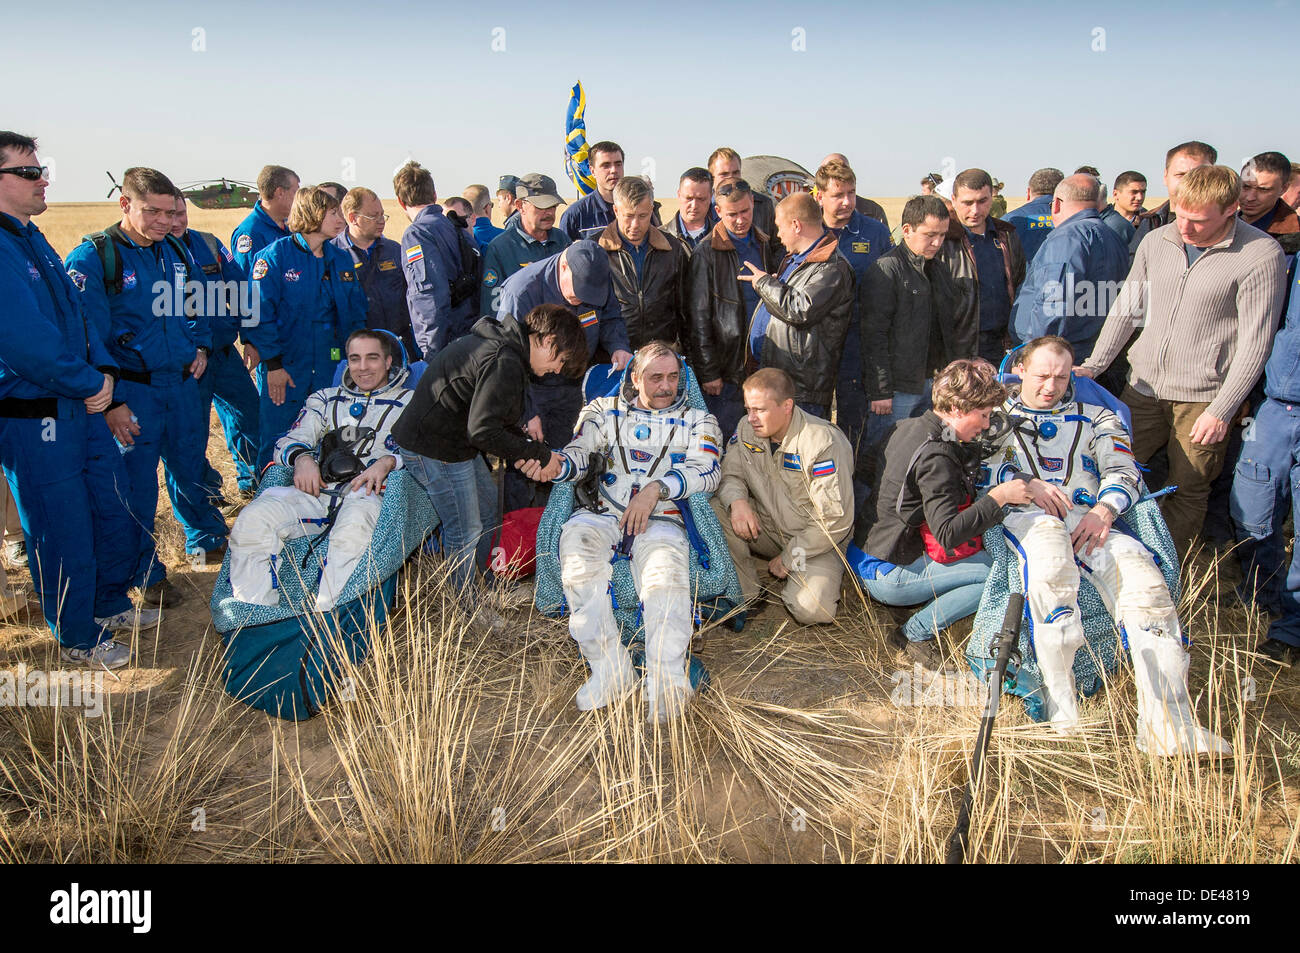 Expedition 36 Flight Engineer Chris Cassidy of NASA, left, Commander Pavel Vinogradov of the Russian Federal Space Agency, center, and, Flight Engineer Alexander Misurkin of Roscosmos, sit in chairs outside the Soyuz TMA-08M capsule just minutes after landing September 11, 2013 near the town of Zhezkazgan, Kazakhstan. Vinogradov, Misurkin and Cassidy returned to Earth after five and a half months on the International Space Station. - Stock Image